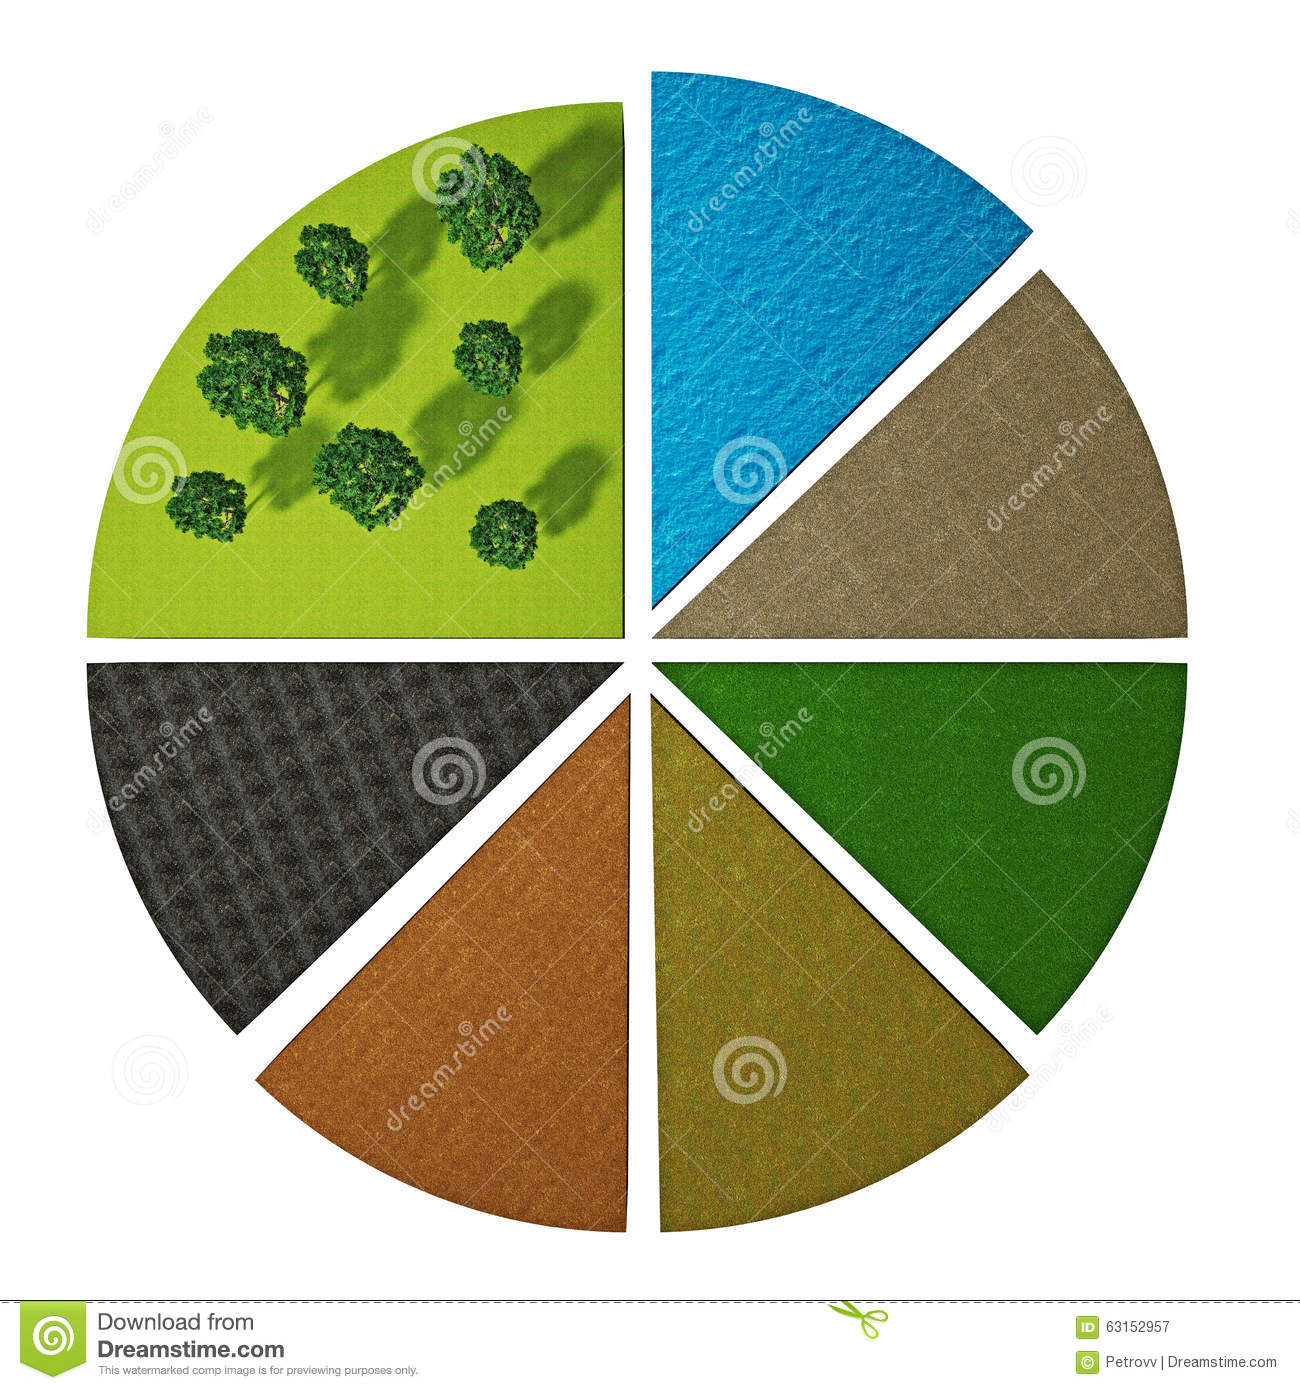 Different types of soils stock illustration image 63152957 for Why are soils different